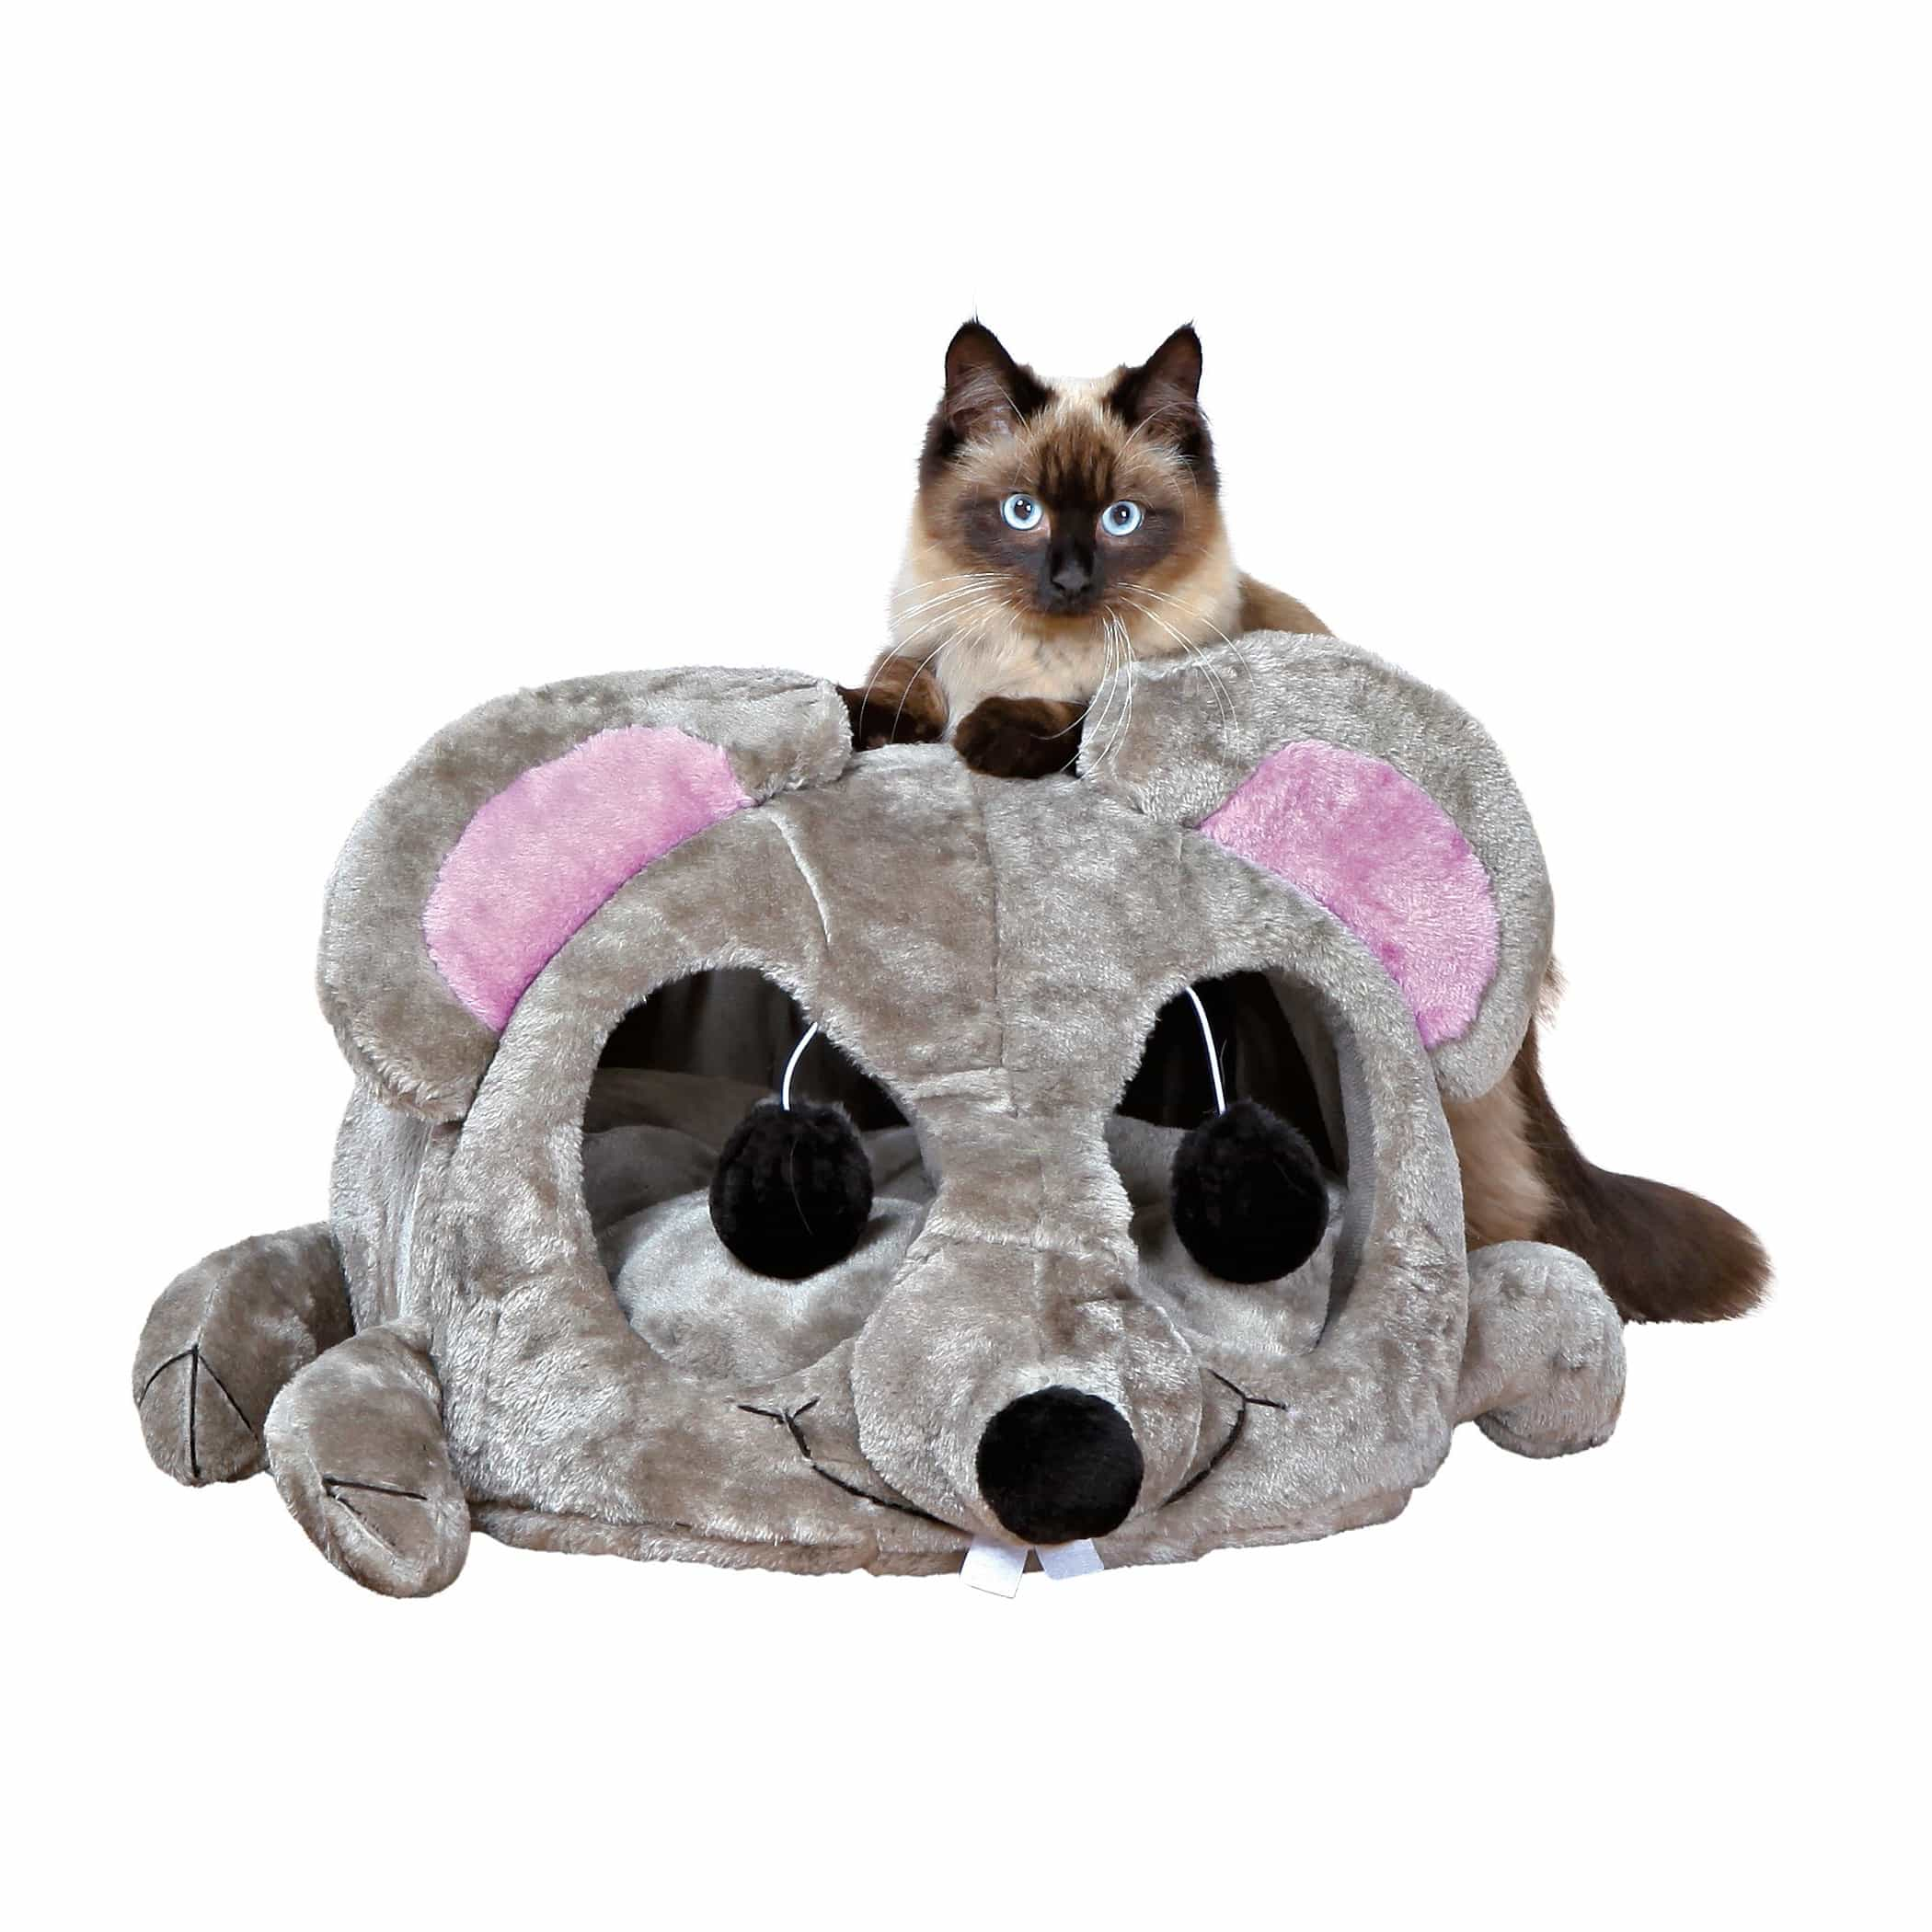 Unique Cat Lover Gift 10 Best Cat Tunnel Ideas Perfect Gifts For Cat Lovers